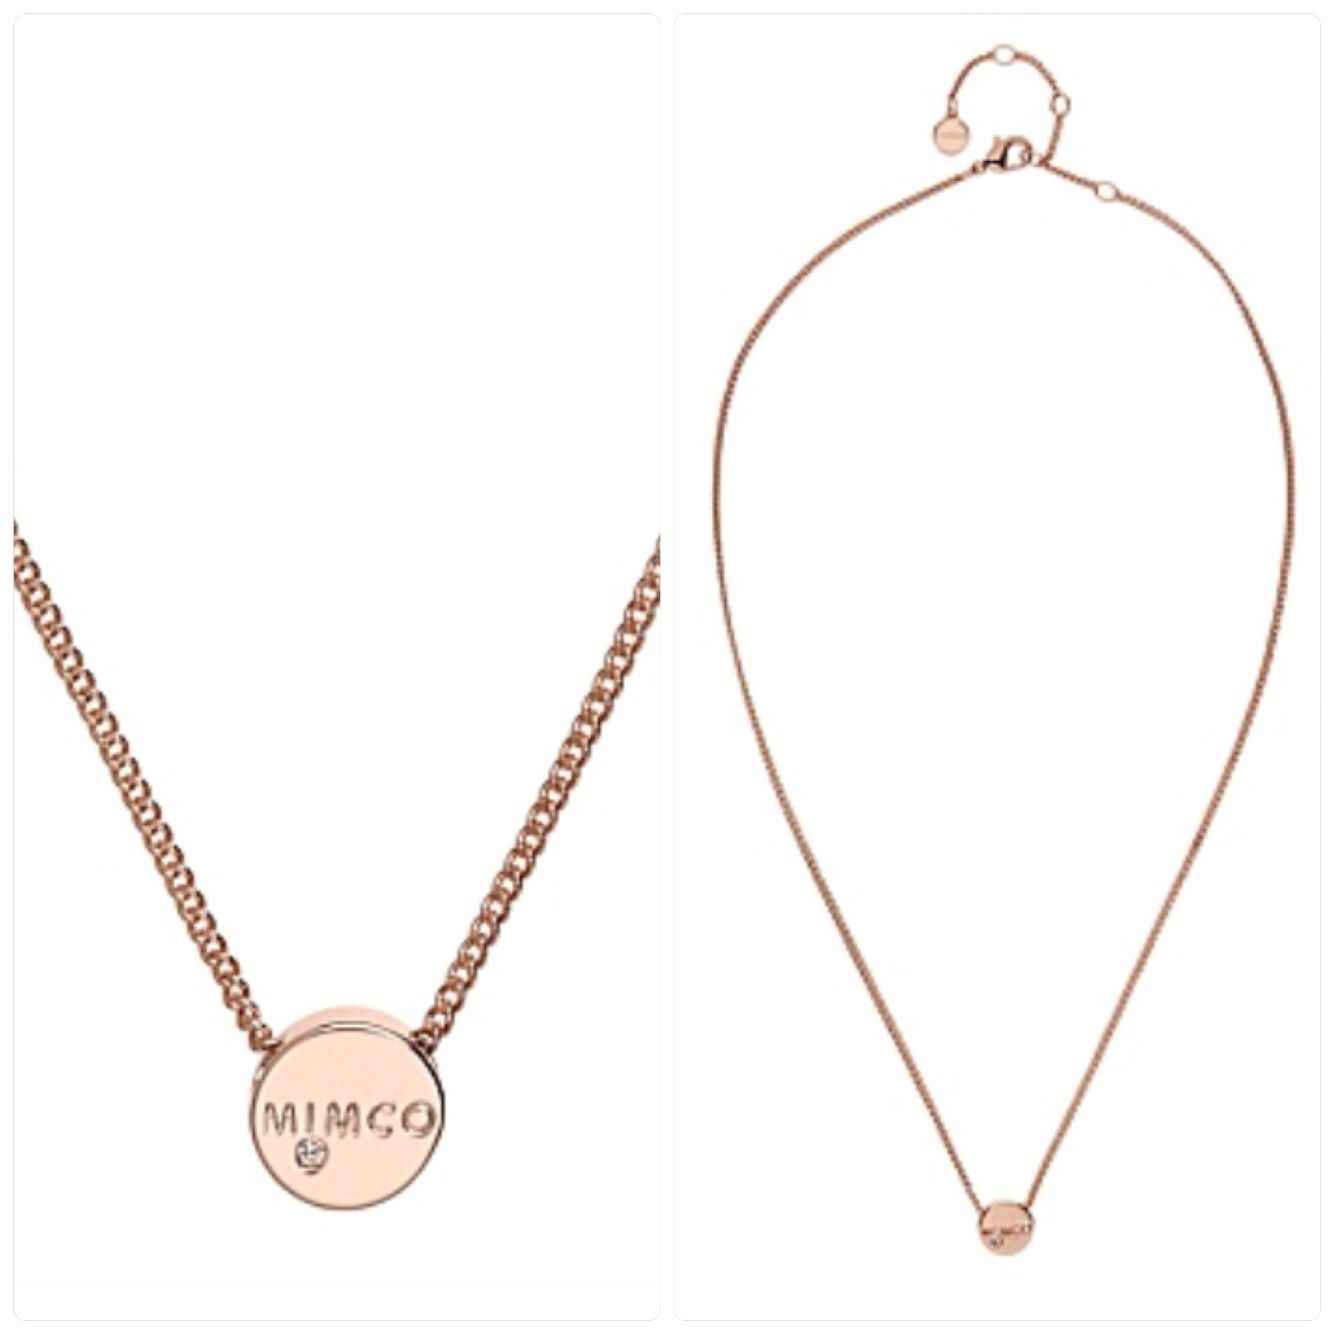 Buy How to chain a big wear necklace pictures trends